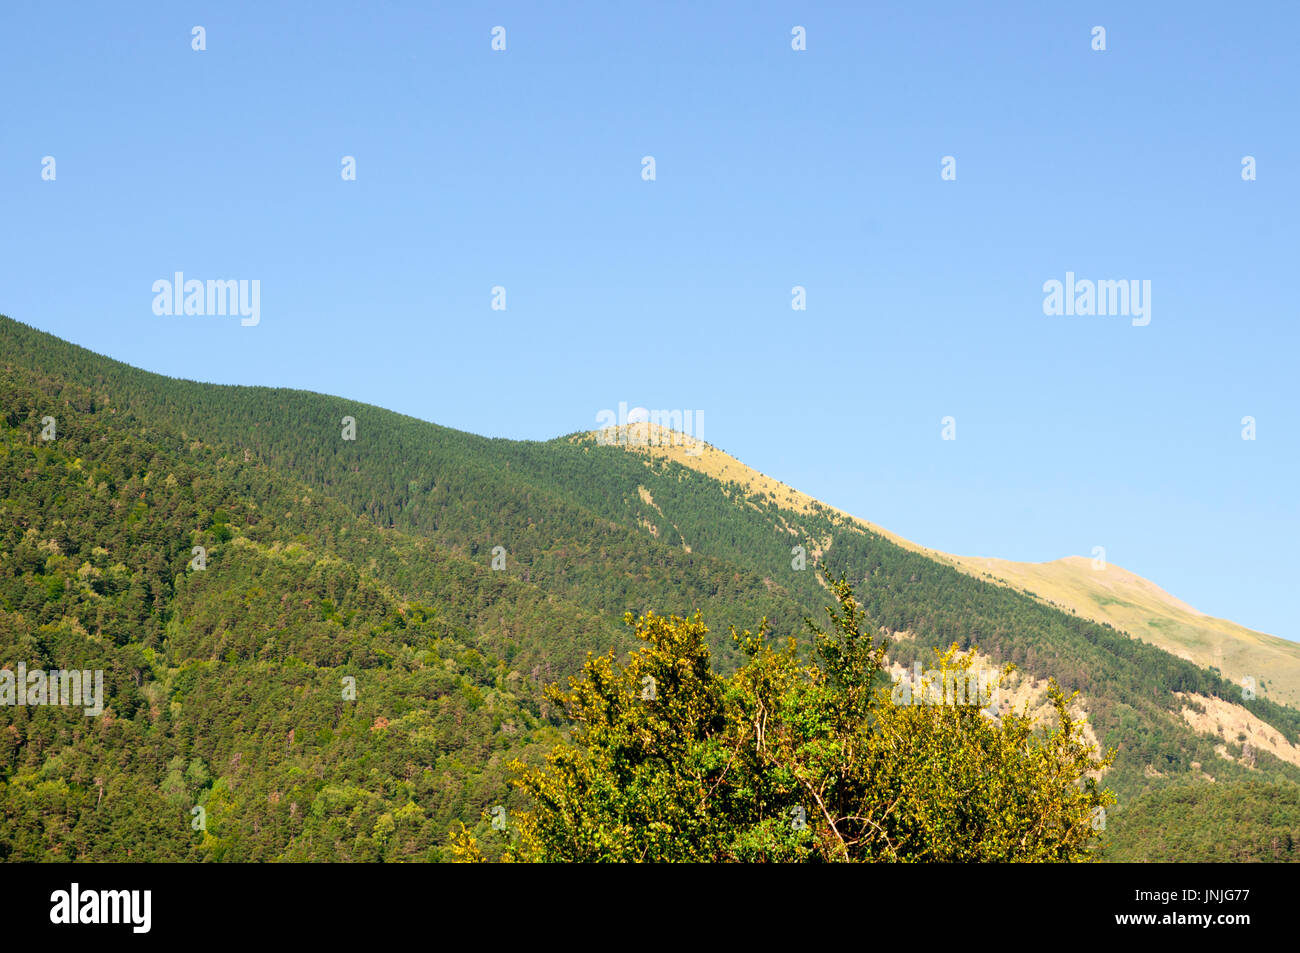 the moon sets over the Pyrenees mountains at Fuerte de Sta Elena (The fort at Santa Elena), Pyrenees Mountains, Stock Photo